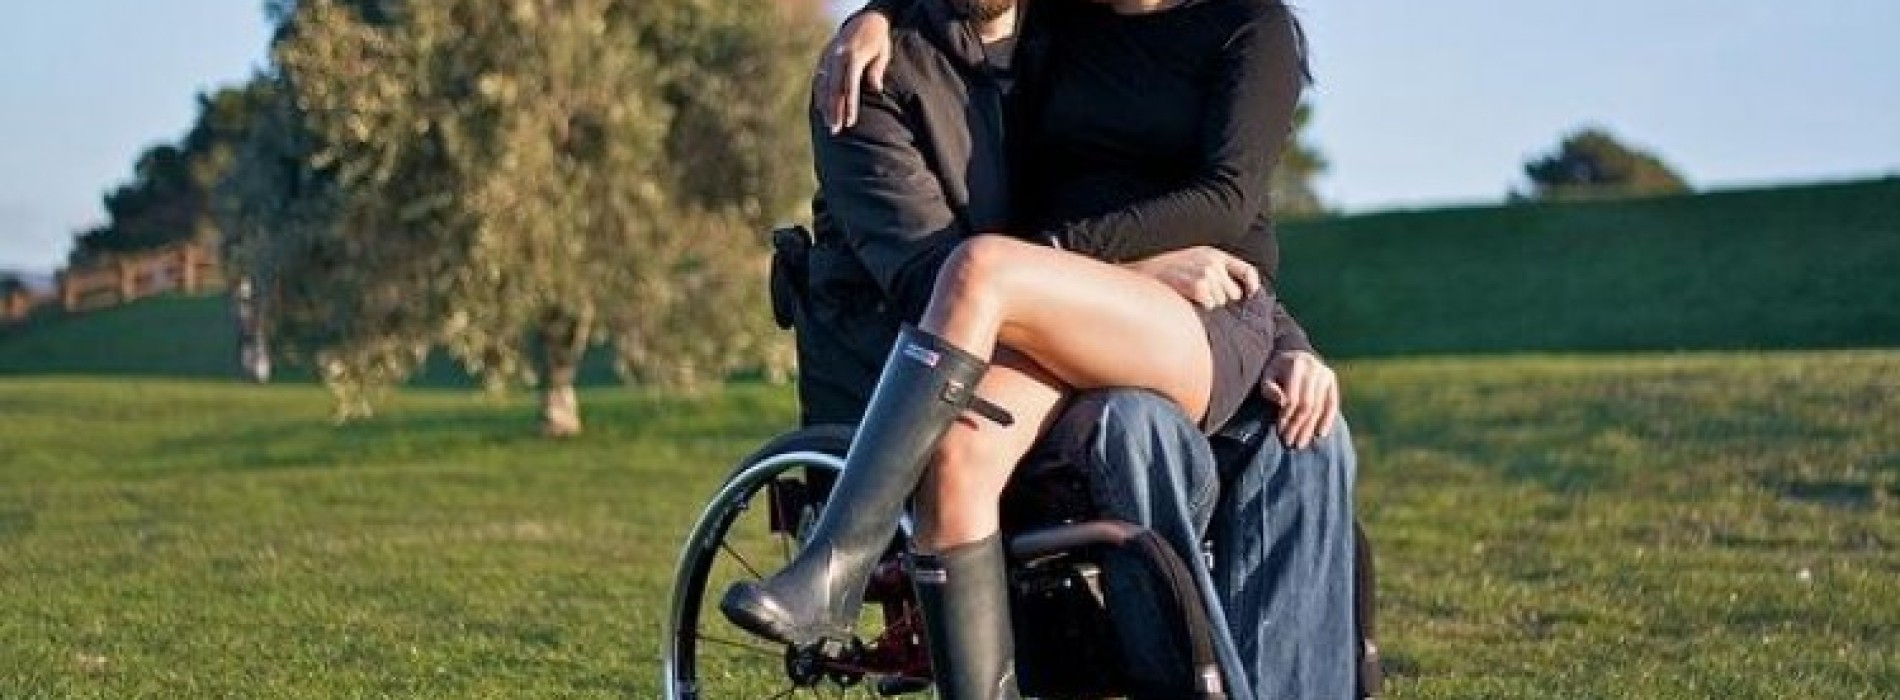 Disability, sex and relationships: sexual services